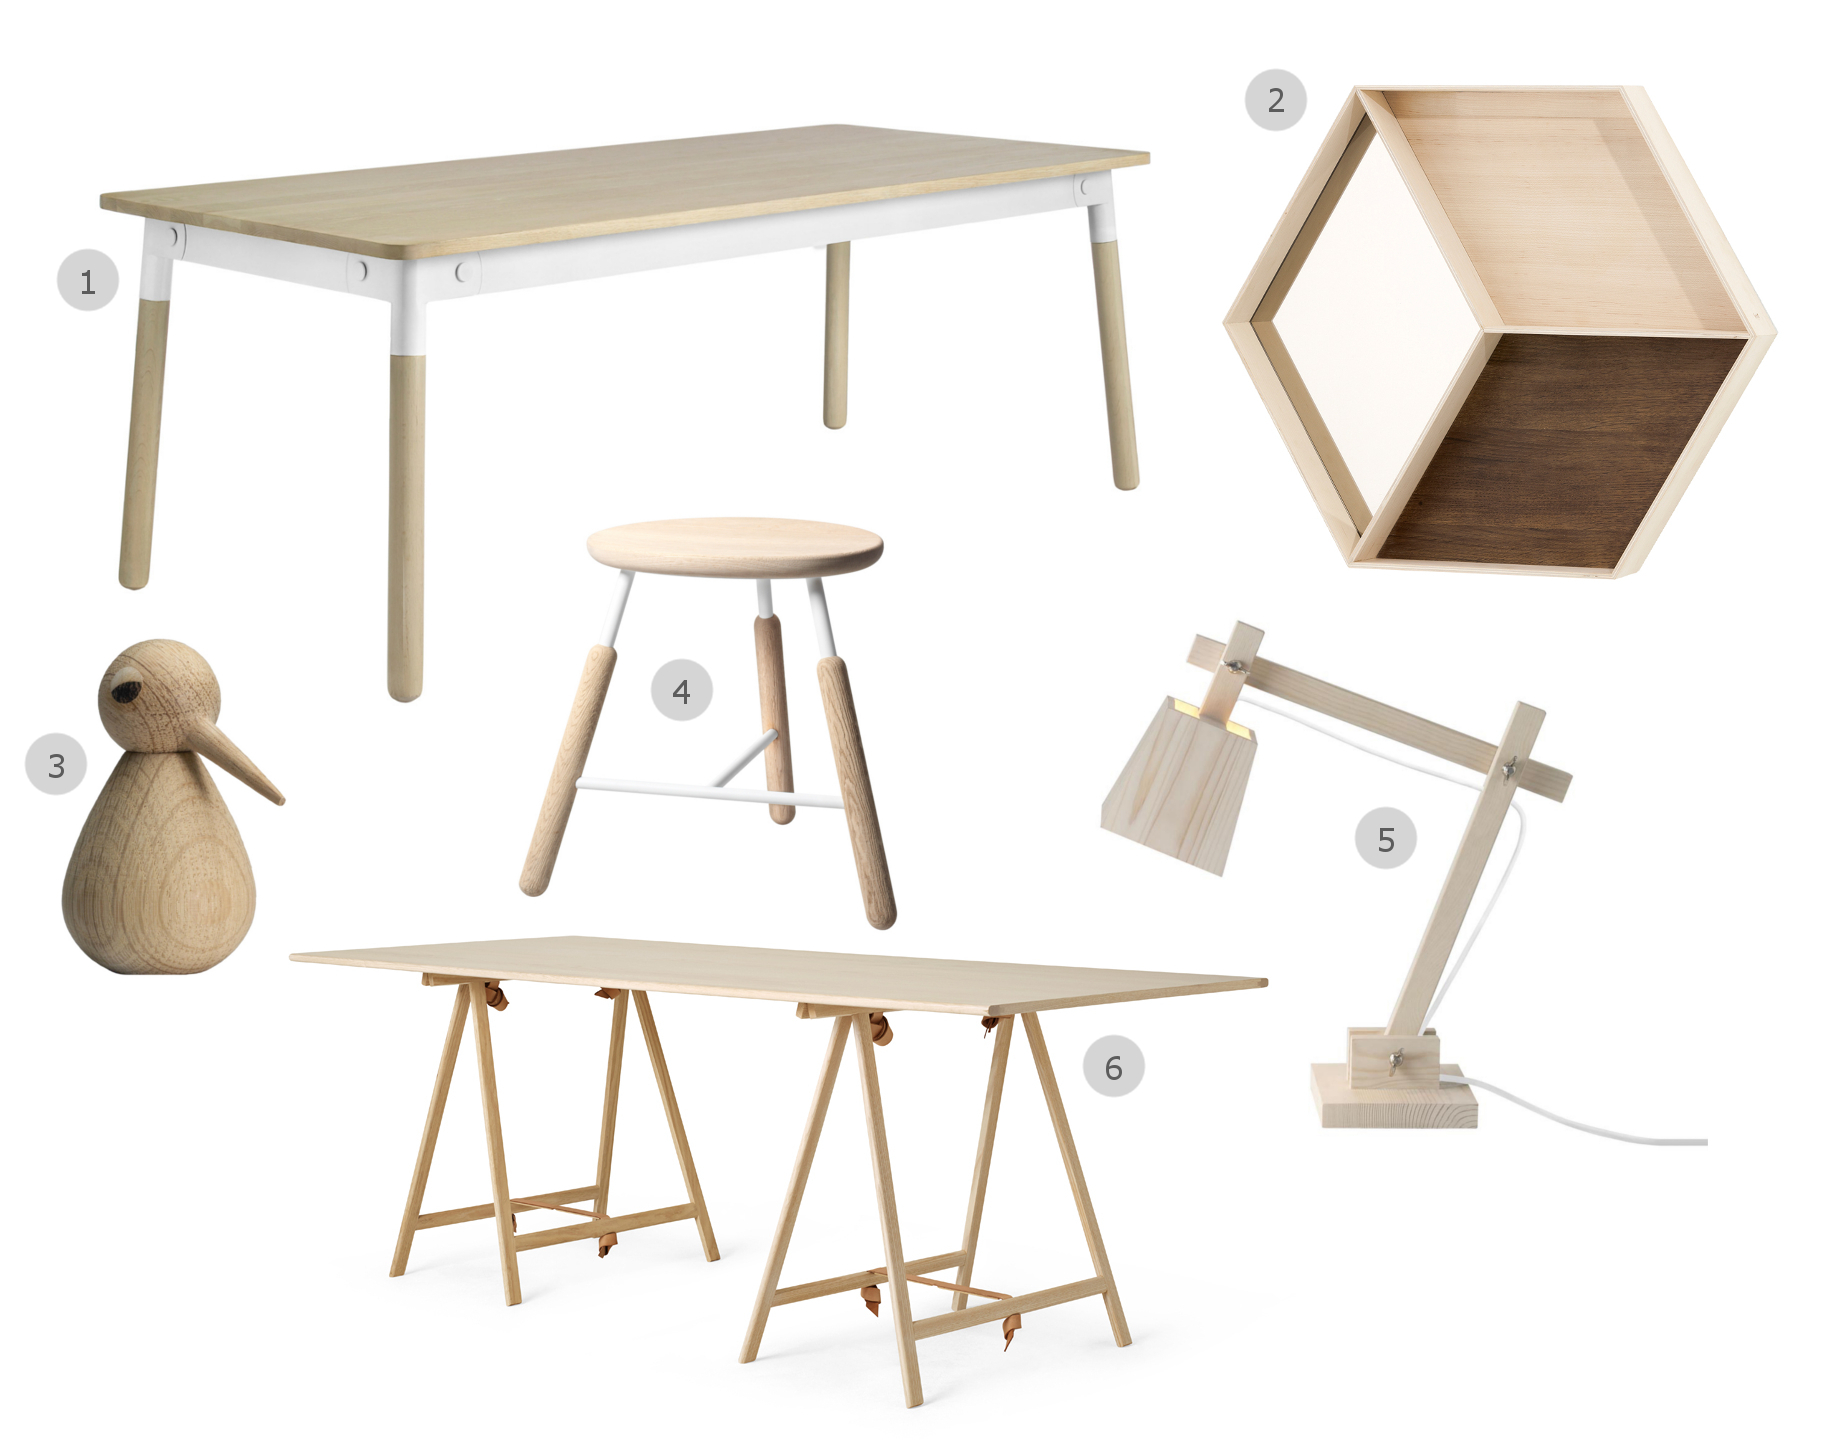 1. Muuto Adaptable Dining Table 2. Ferm Living Wall Wonder Mirror Maple 3. ArchitectMade Large BIRD Figure 4. &Tradition Raft Stool 5. Muuto Wood Table Lamp 6. Menu Knot Trestle Table Natural Ash